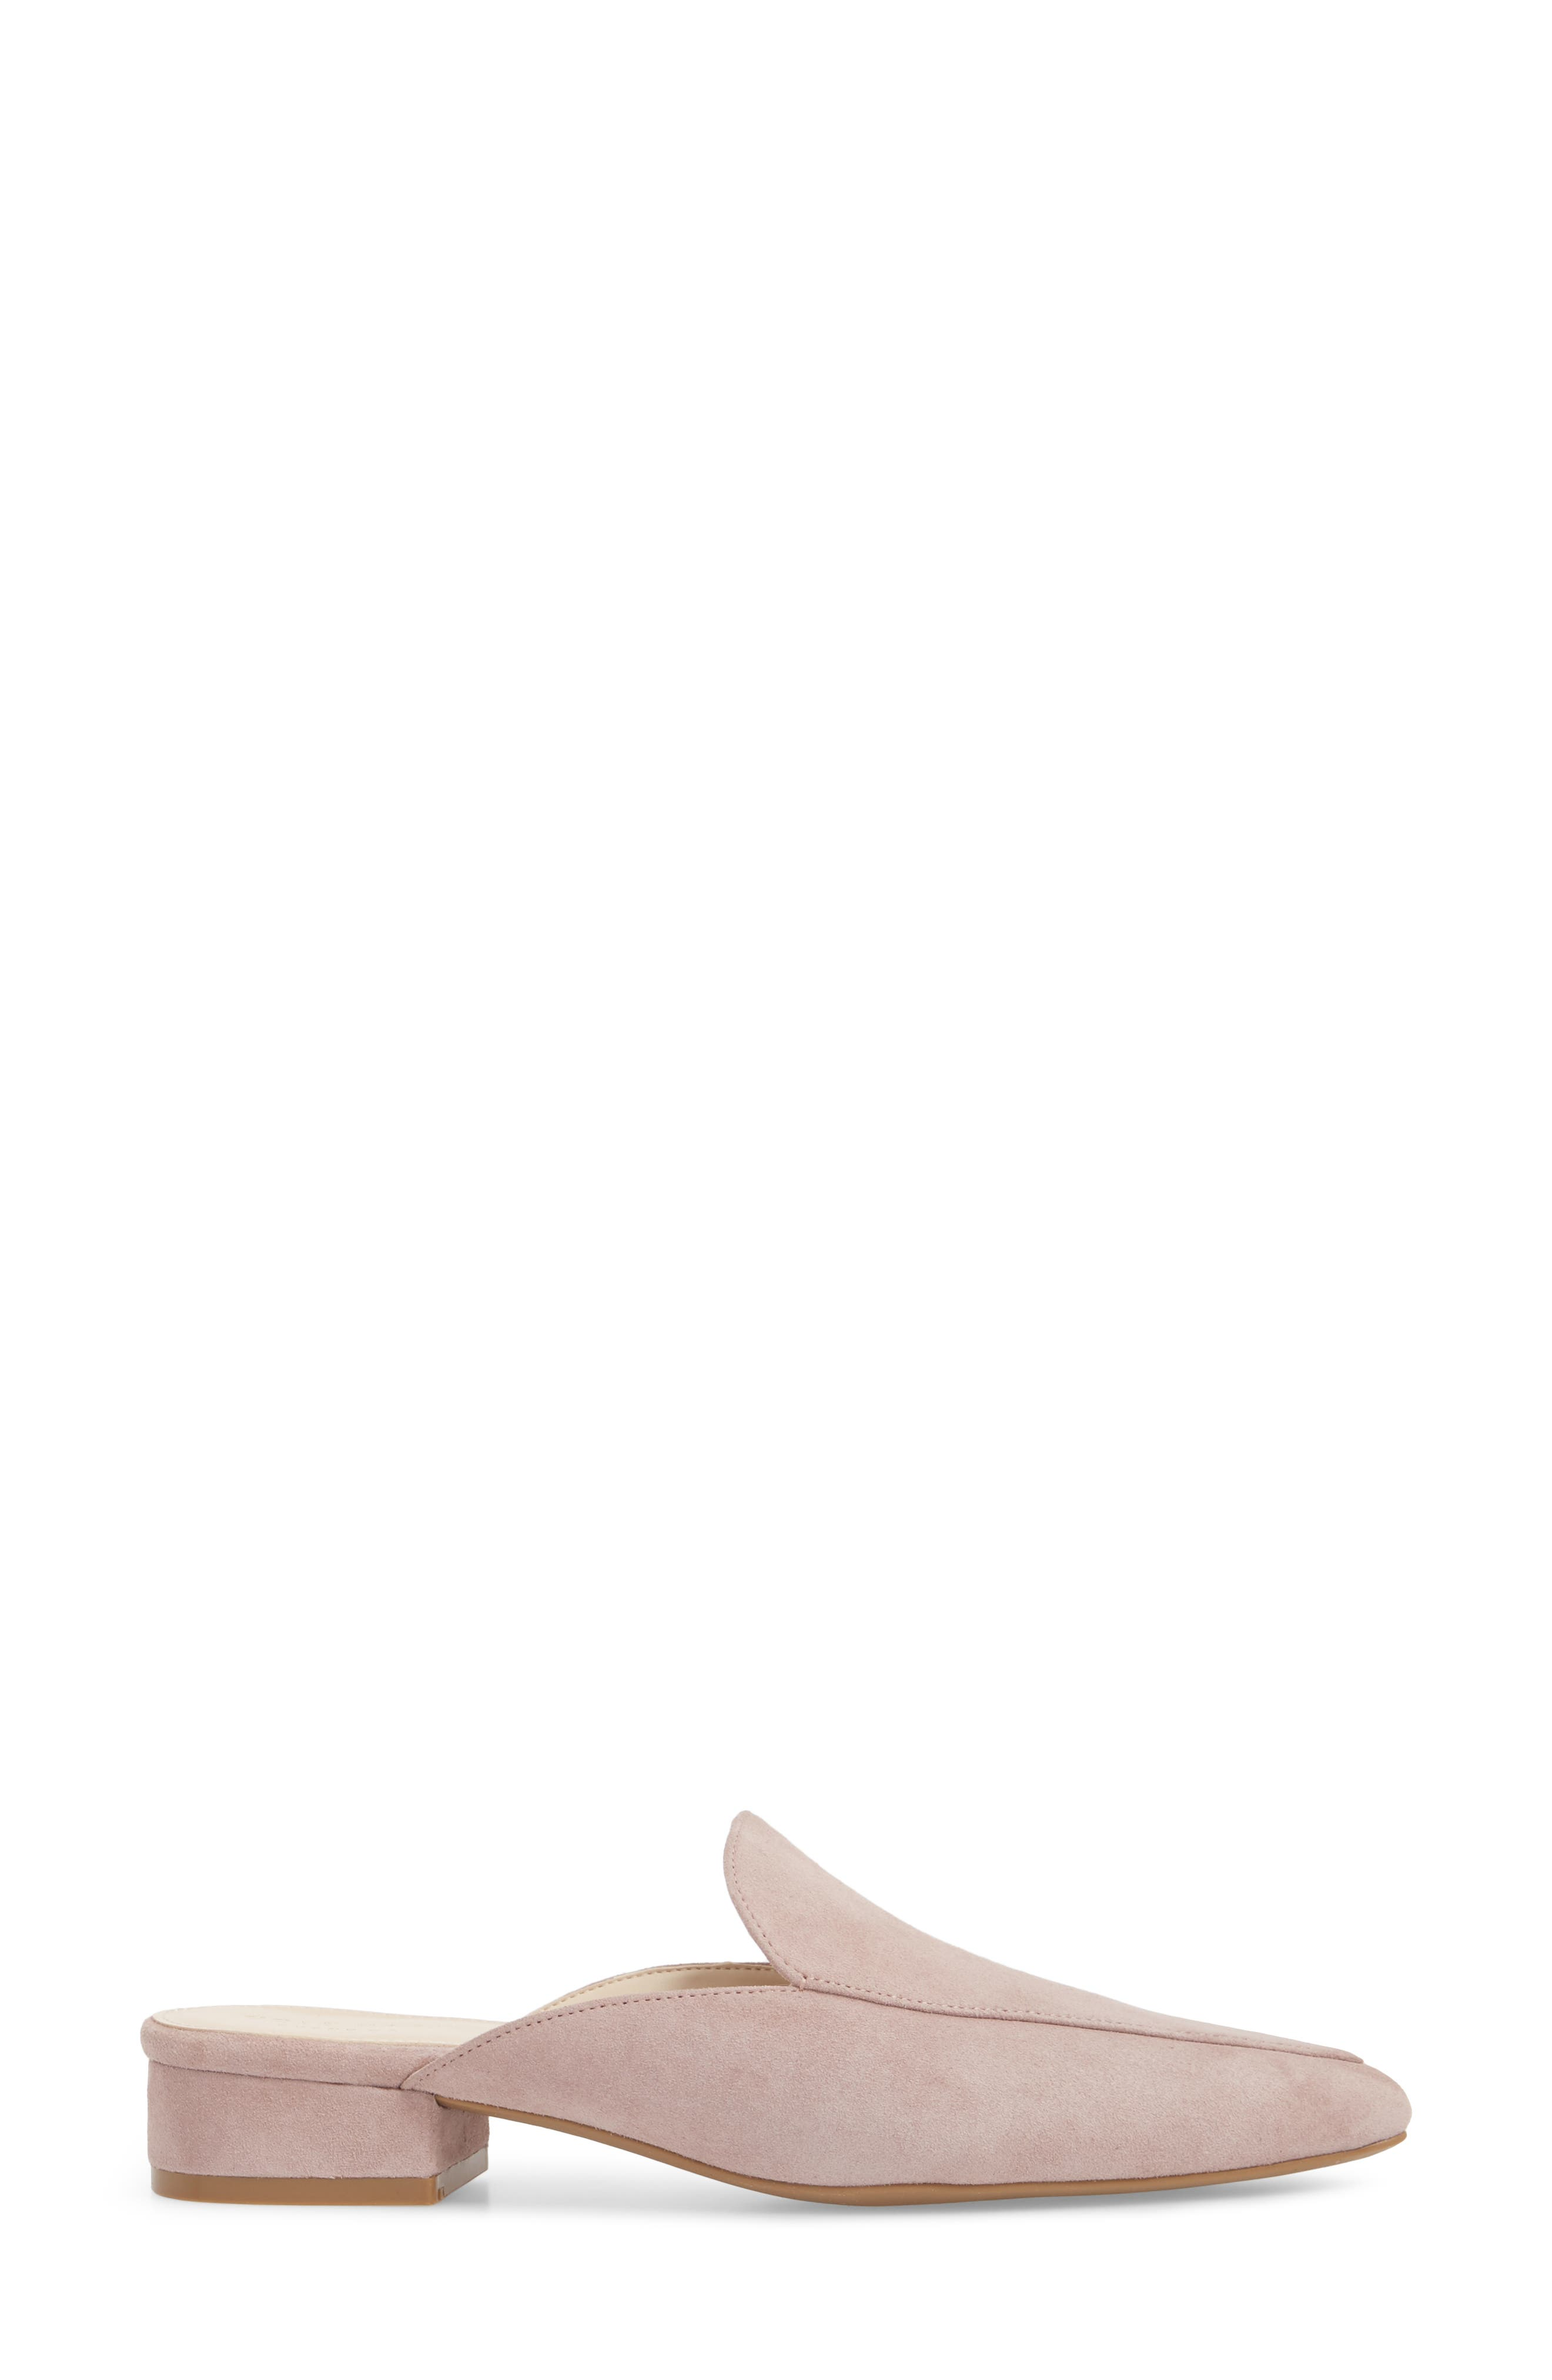 Piper Loafer Mule,                             Alternate thumbnail 3, color,                             Twilight Mauve Suede